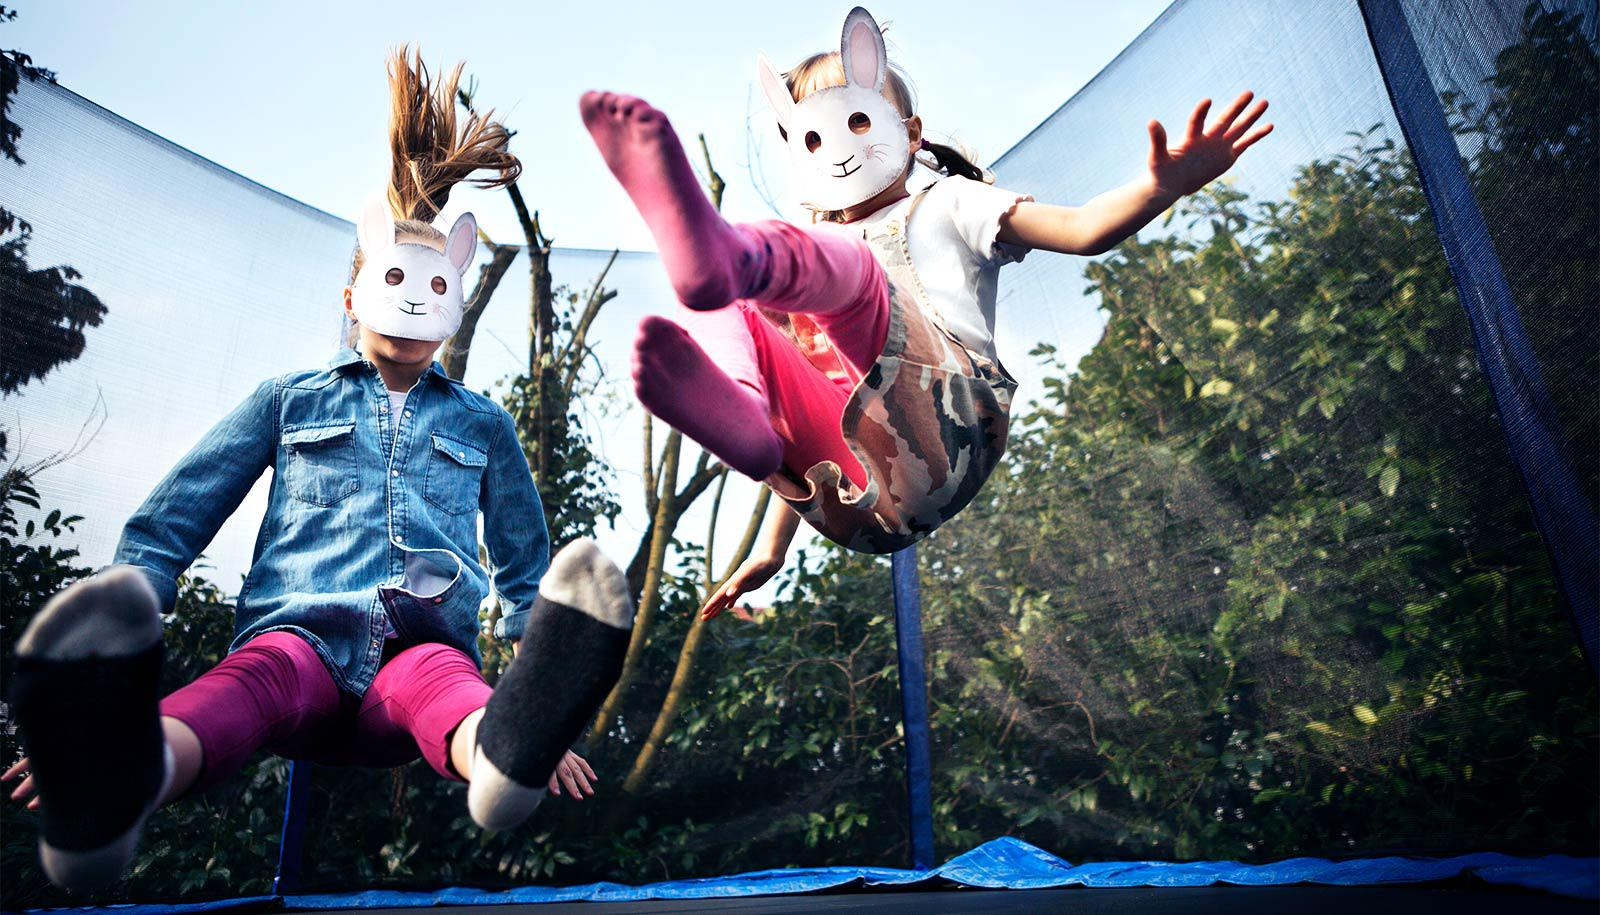 Two young girls in paper rabbit masks jump on a trampoline outside